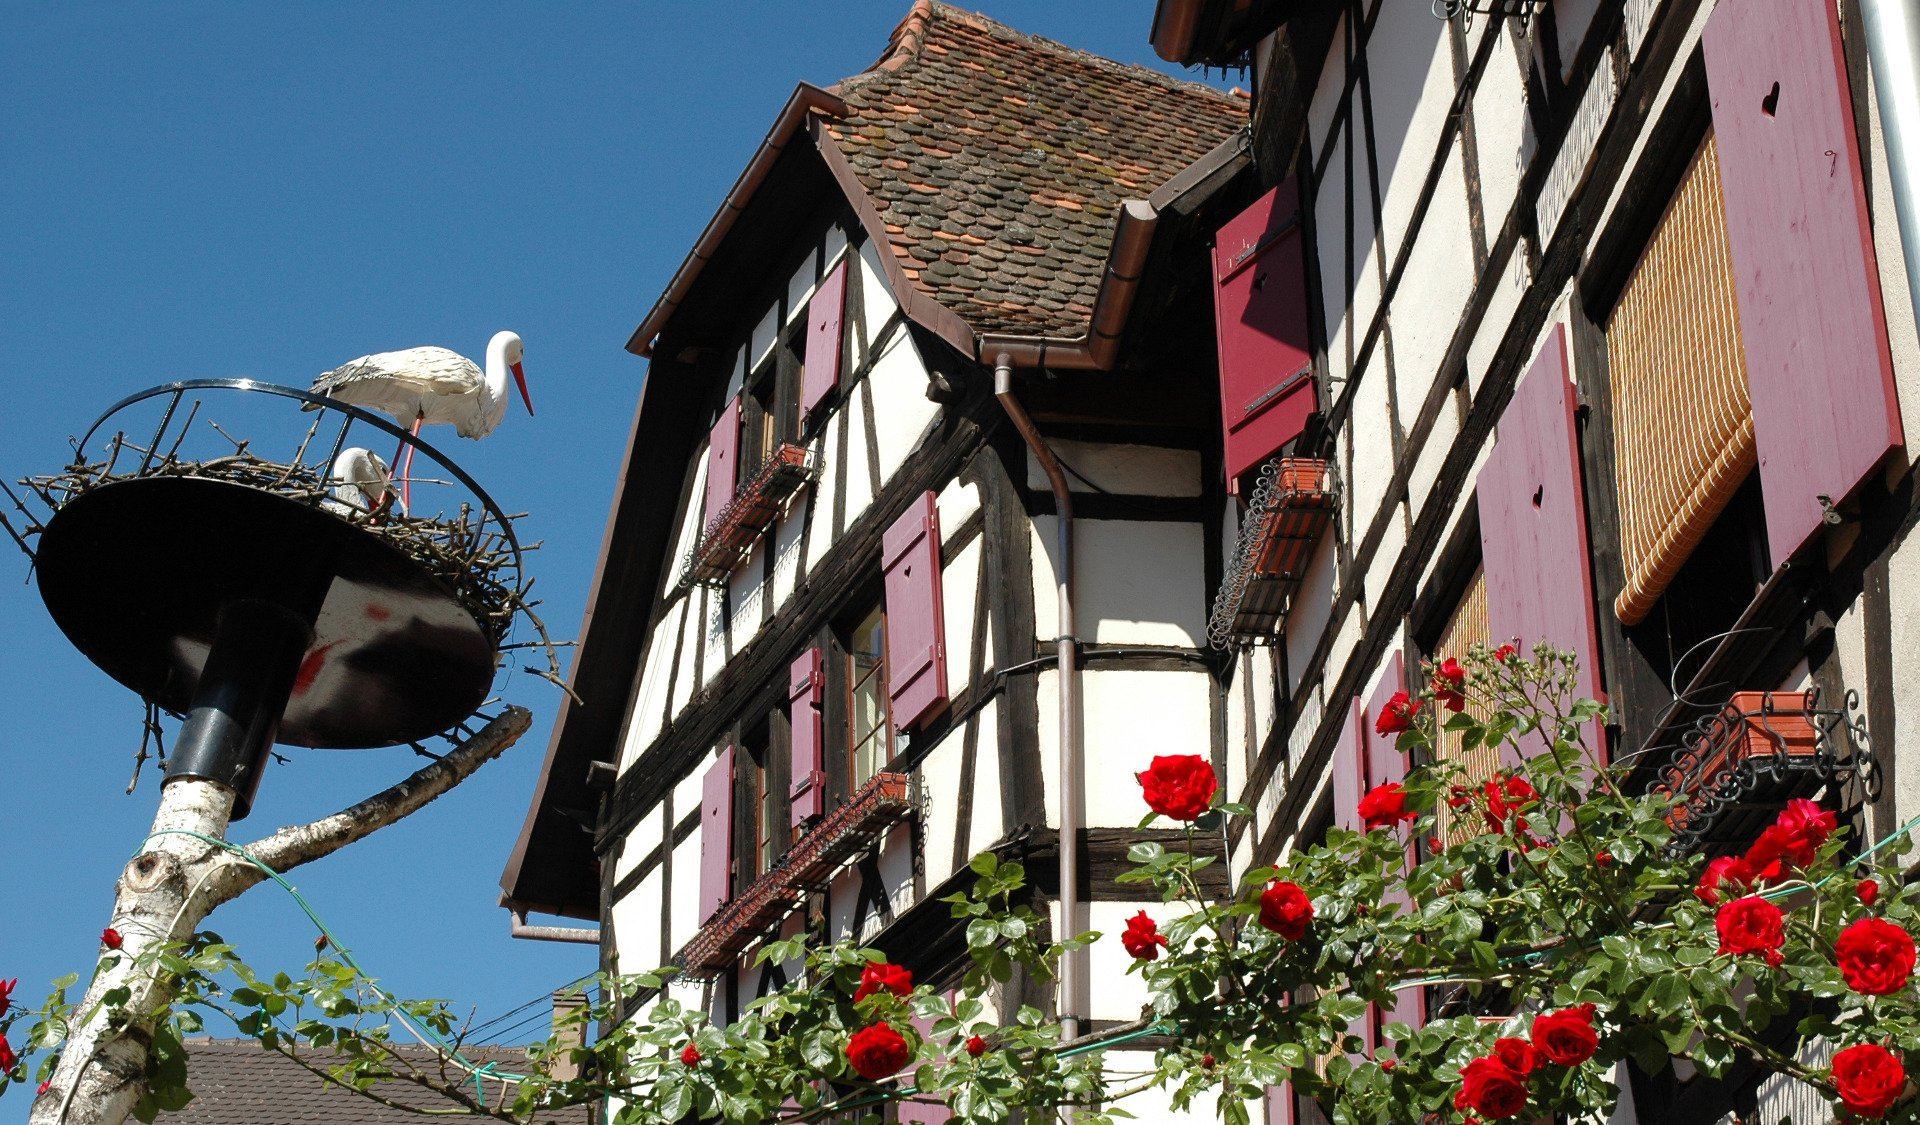 stork-private tour-Alsace-France-Strasbourg